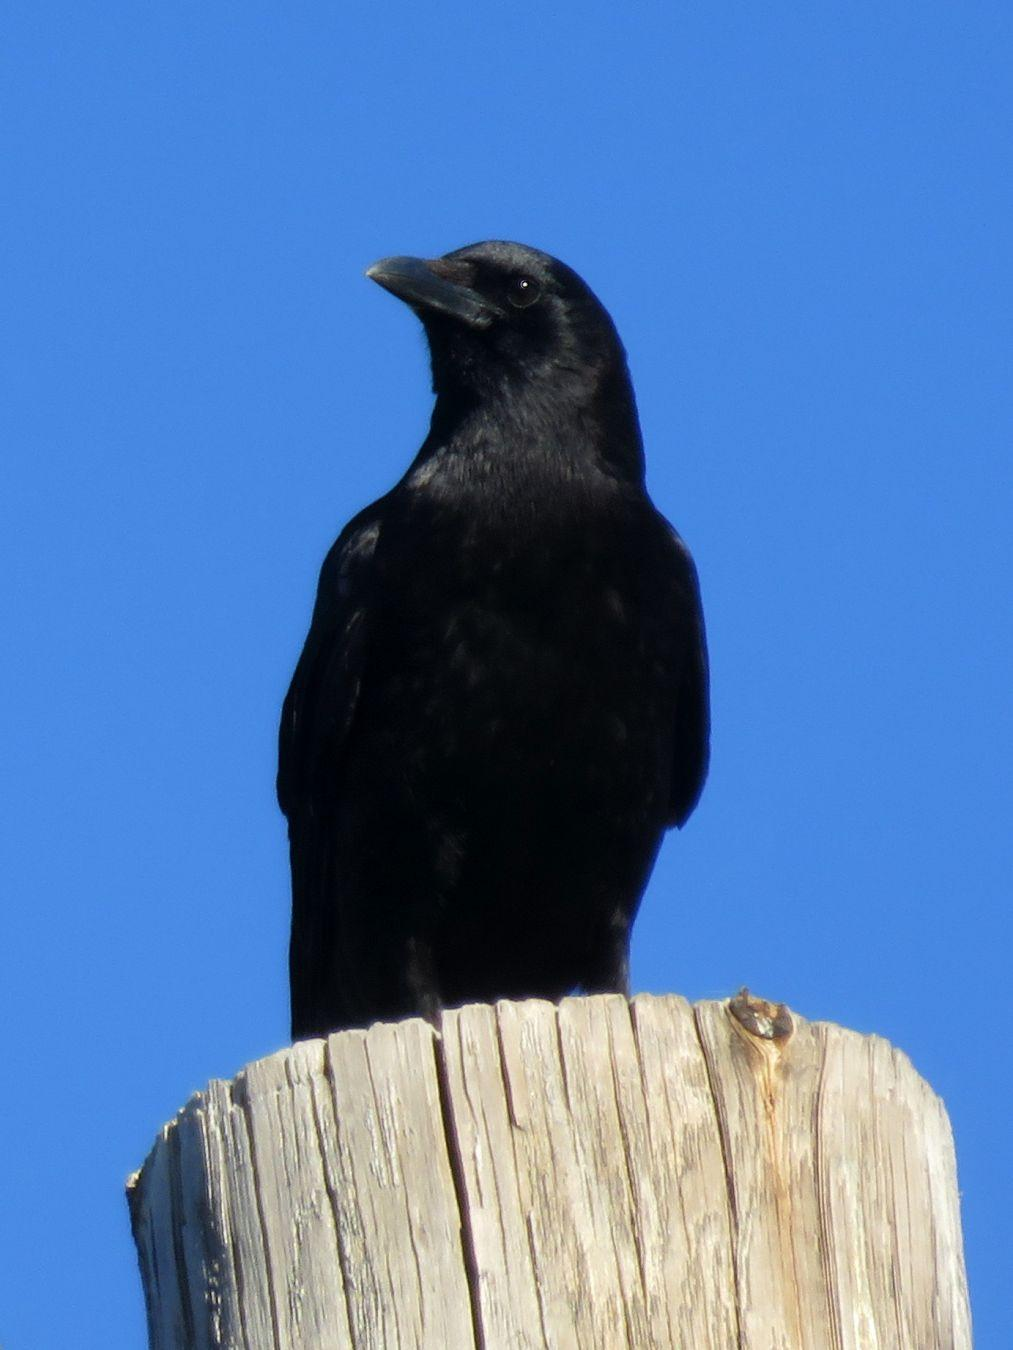 On the lookout. #birds #crow